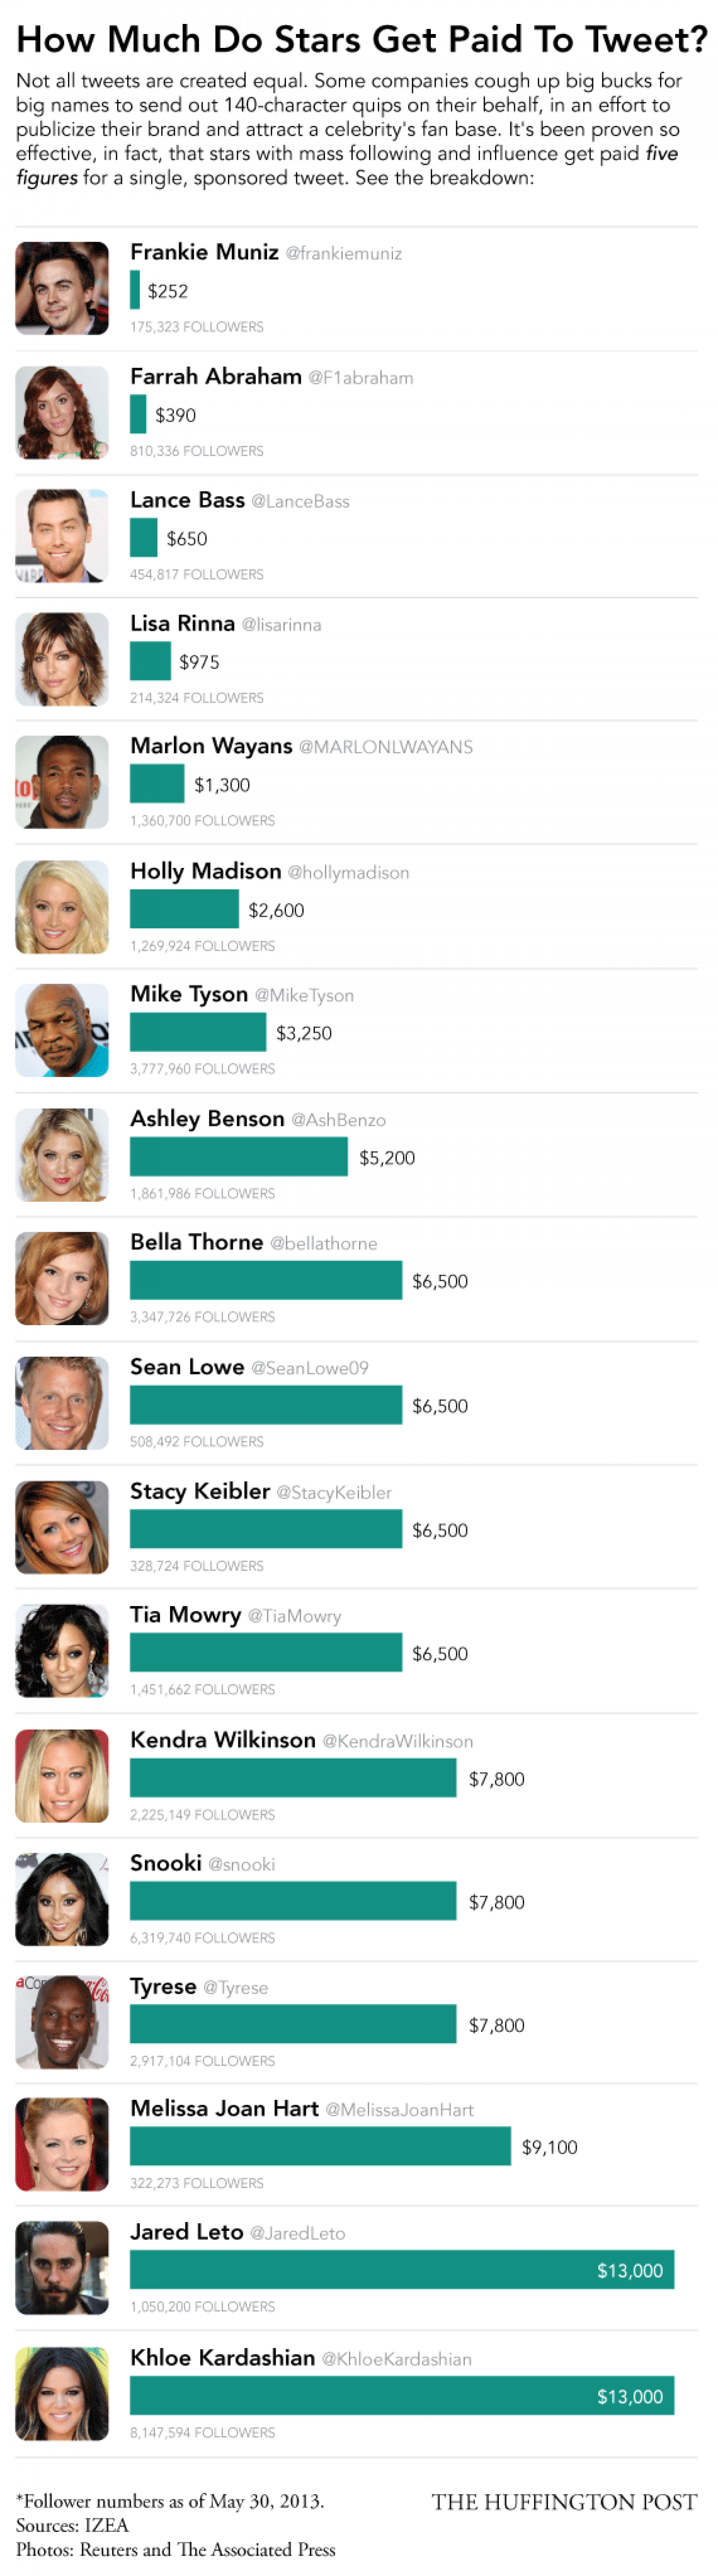 How Much 18 Different Celebrities Get Paid To Tweet Infographic